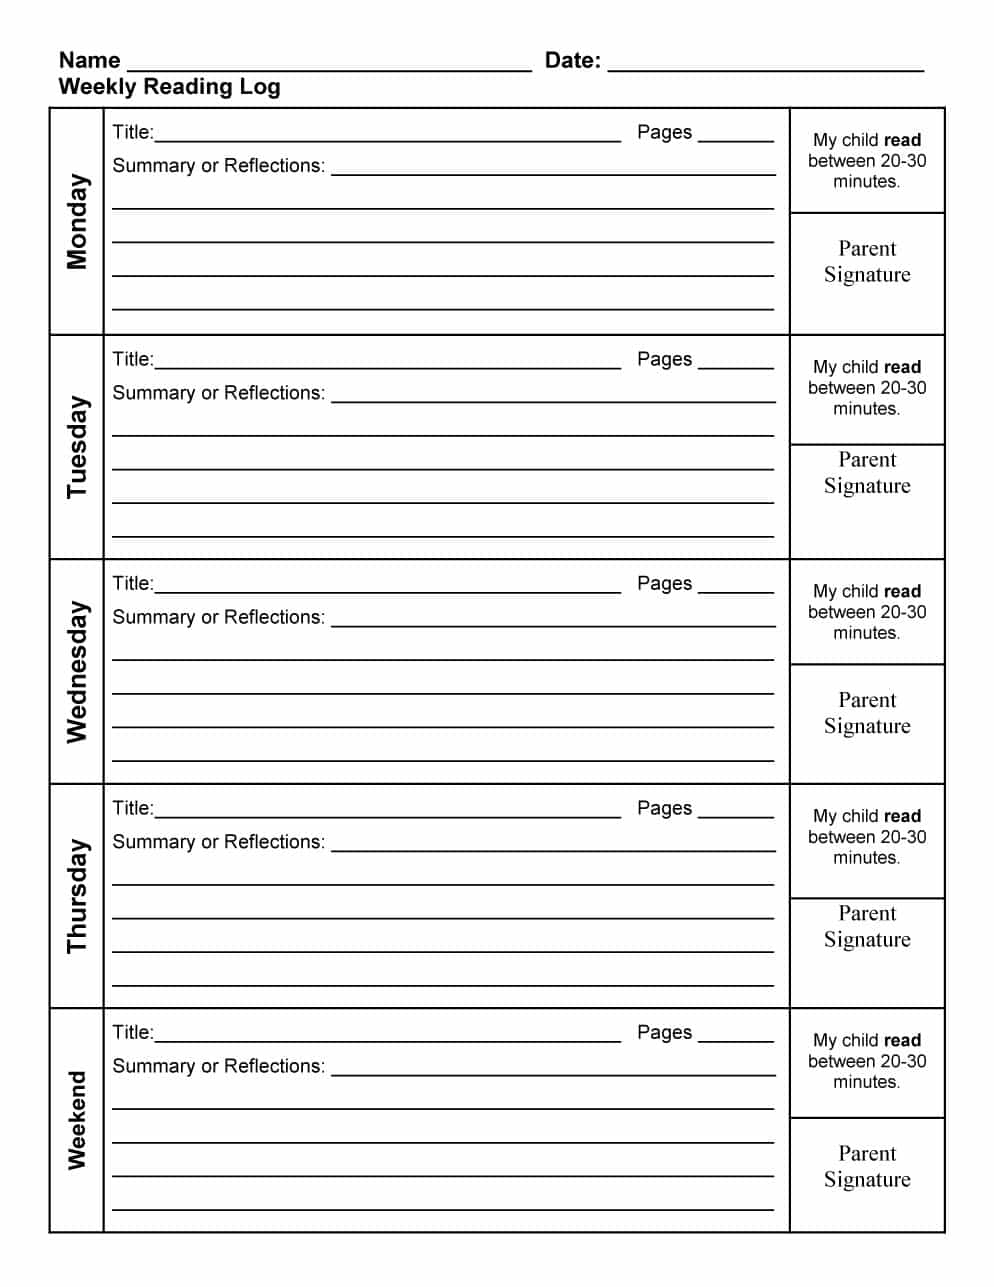 47 Printable Reading Log Templates For Kids, Middle School & Adults - Free Printable Reading Logs For Children